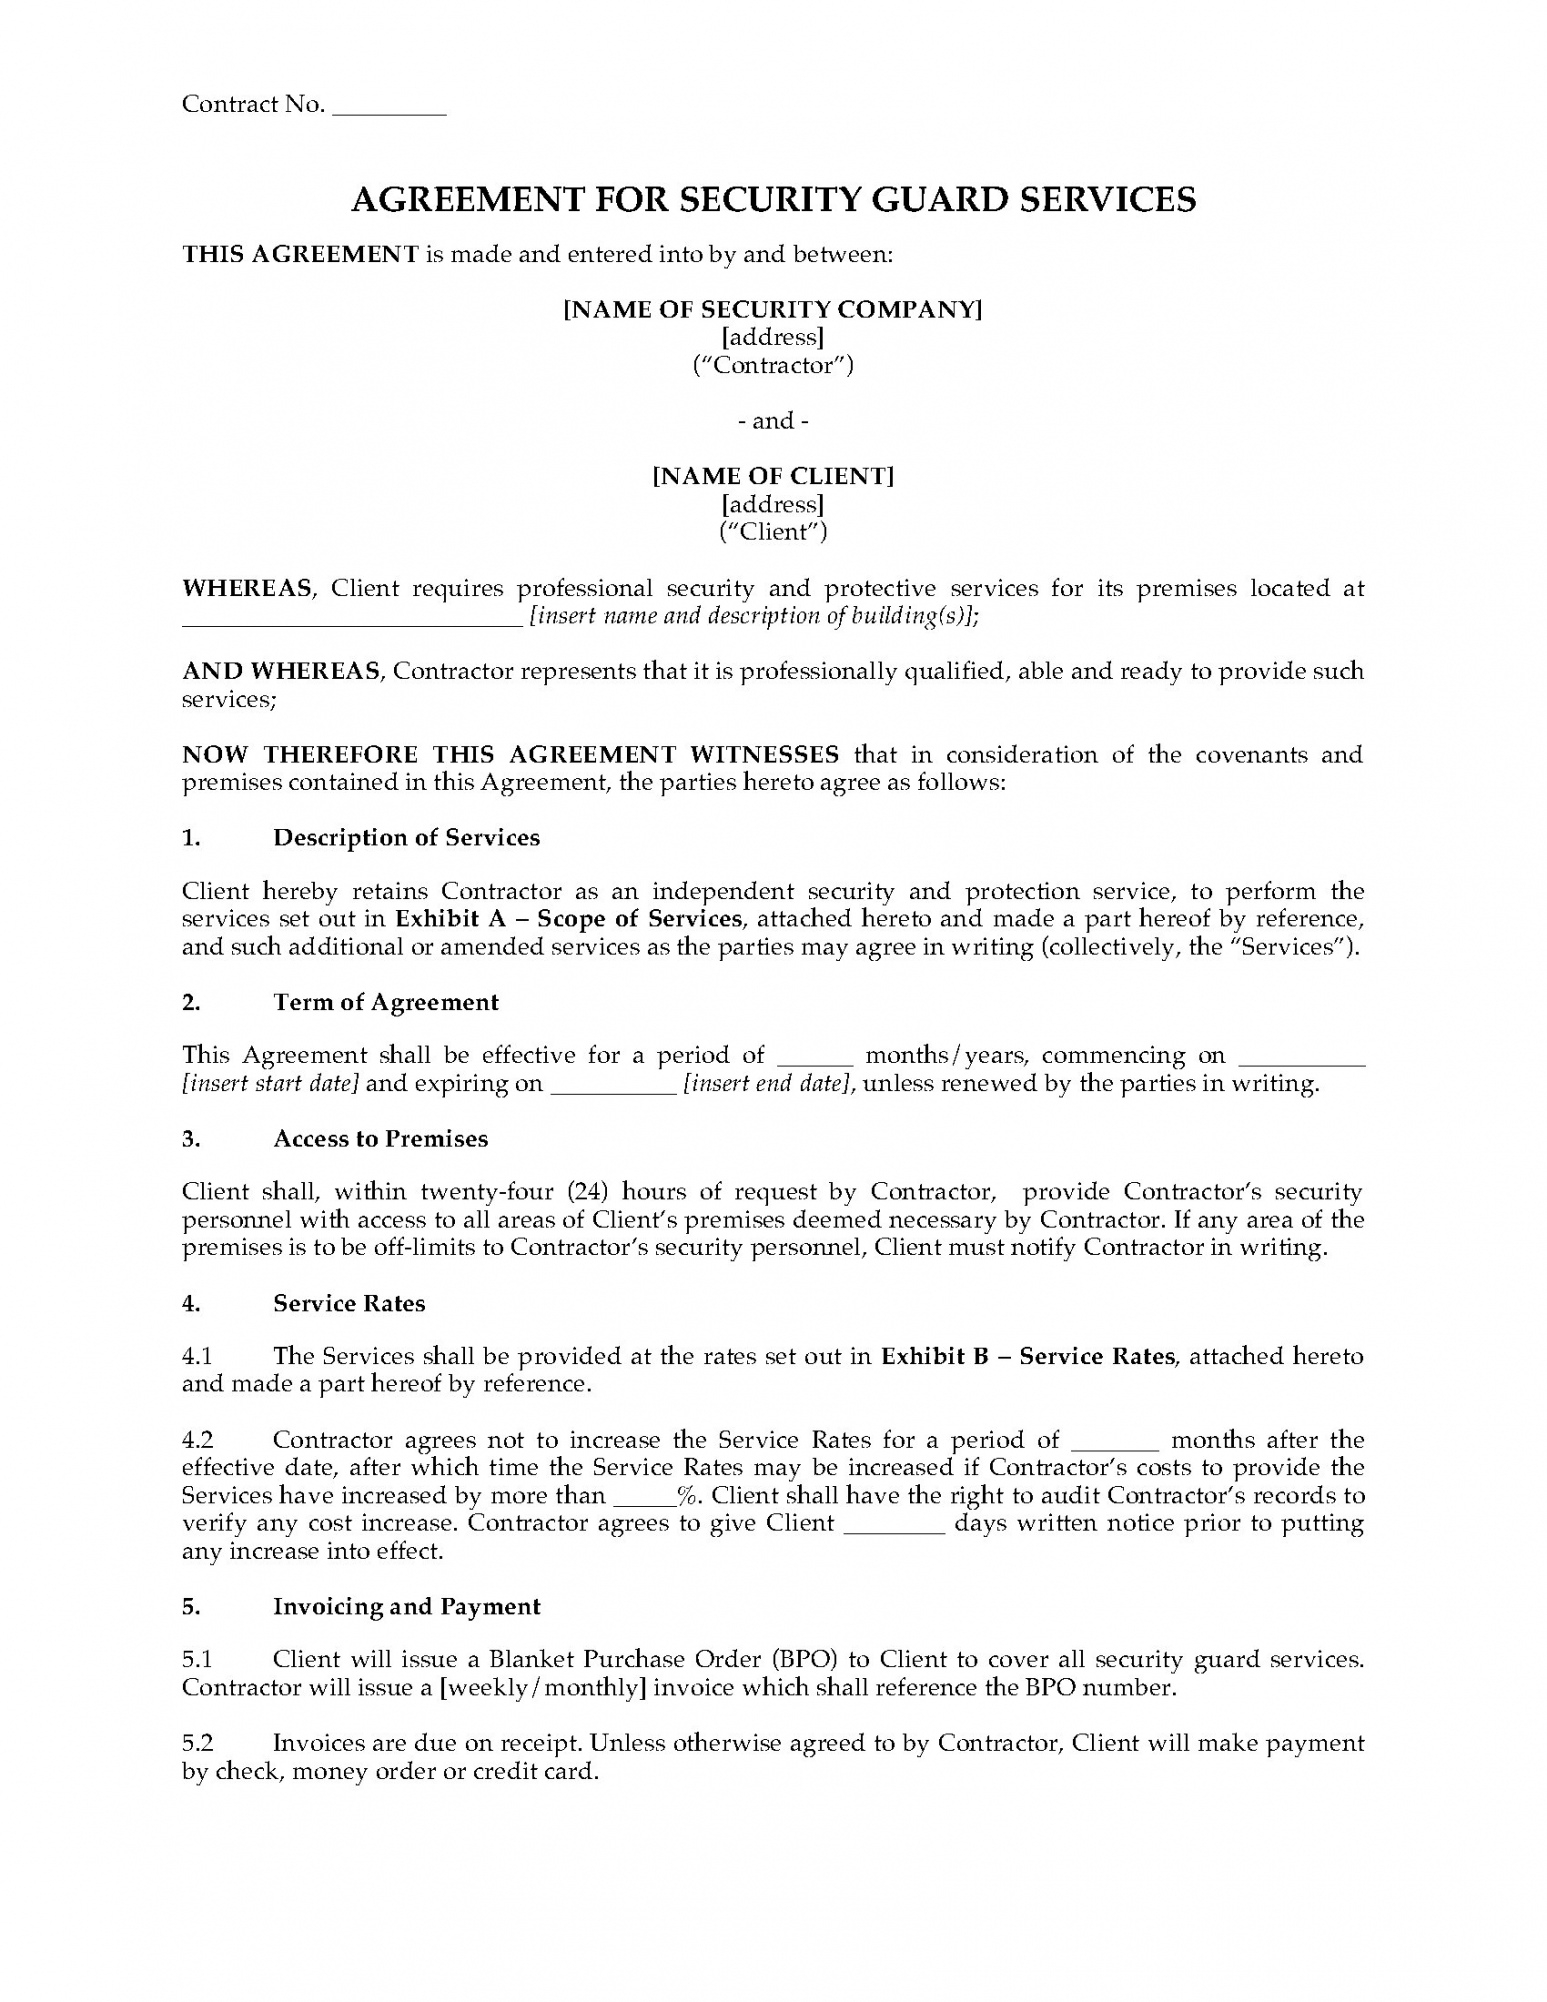 sample usa security guard services agreement security guard contract agreement template sample